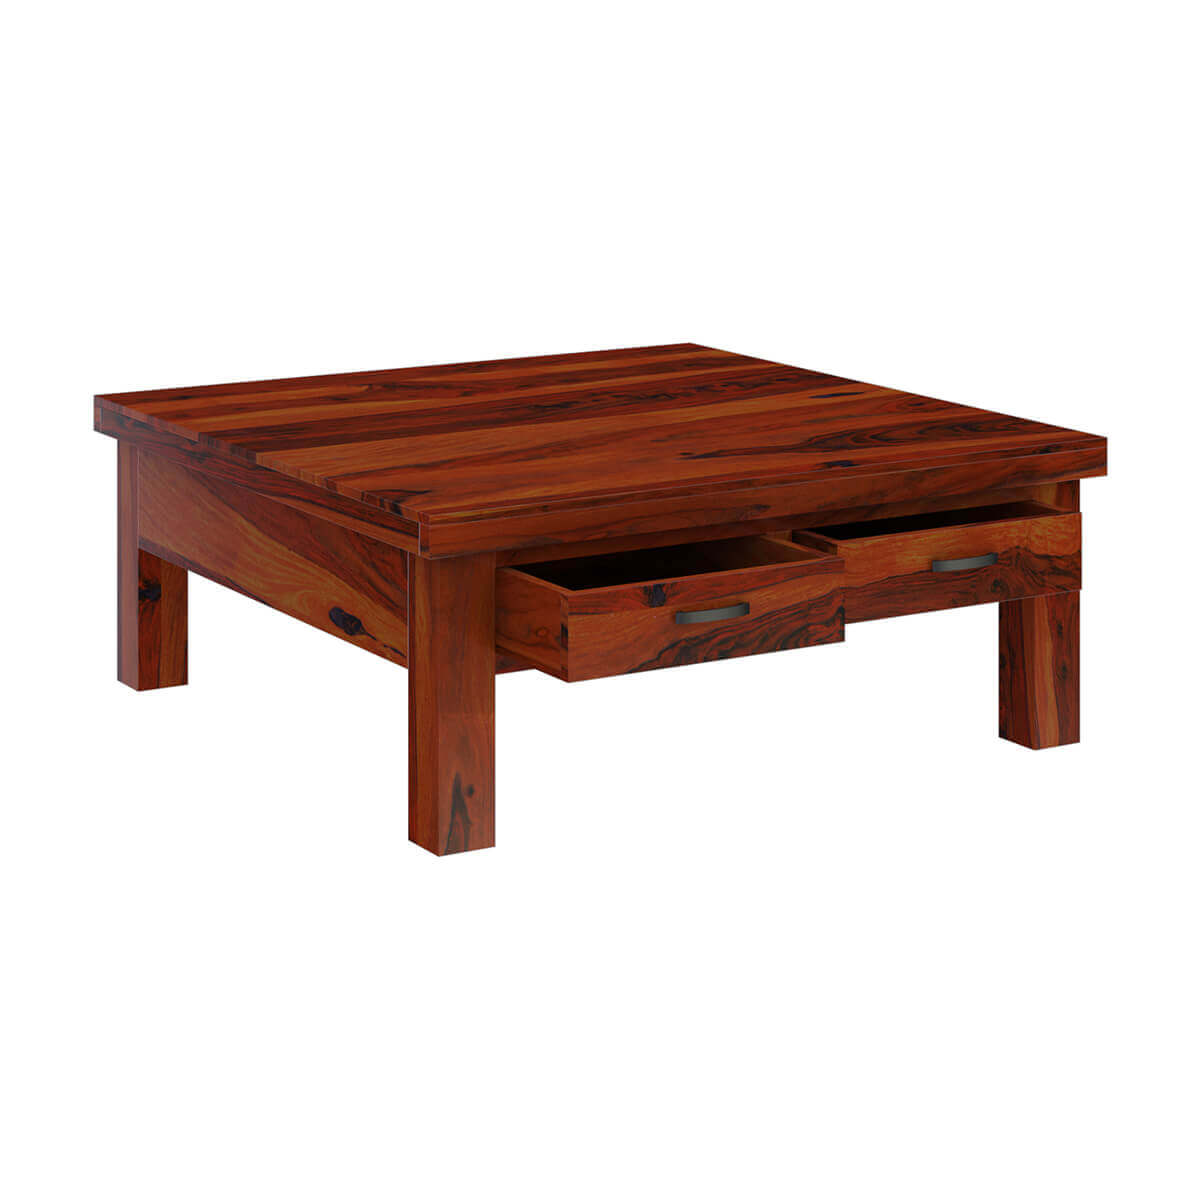 Cheverly modern style solid wood 4 drawers square coffee table for Solid wood coffee table